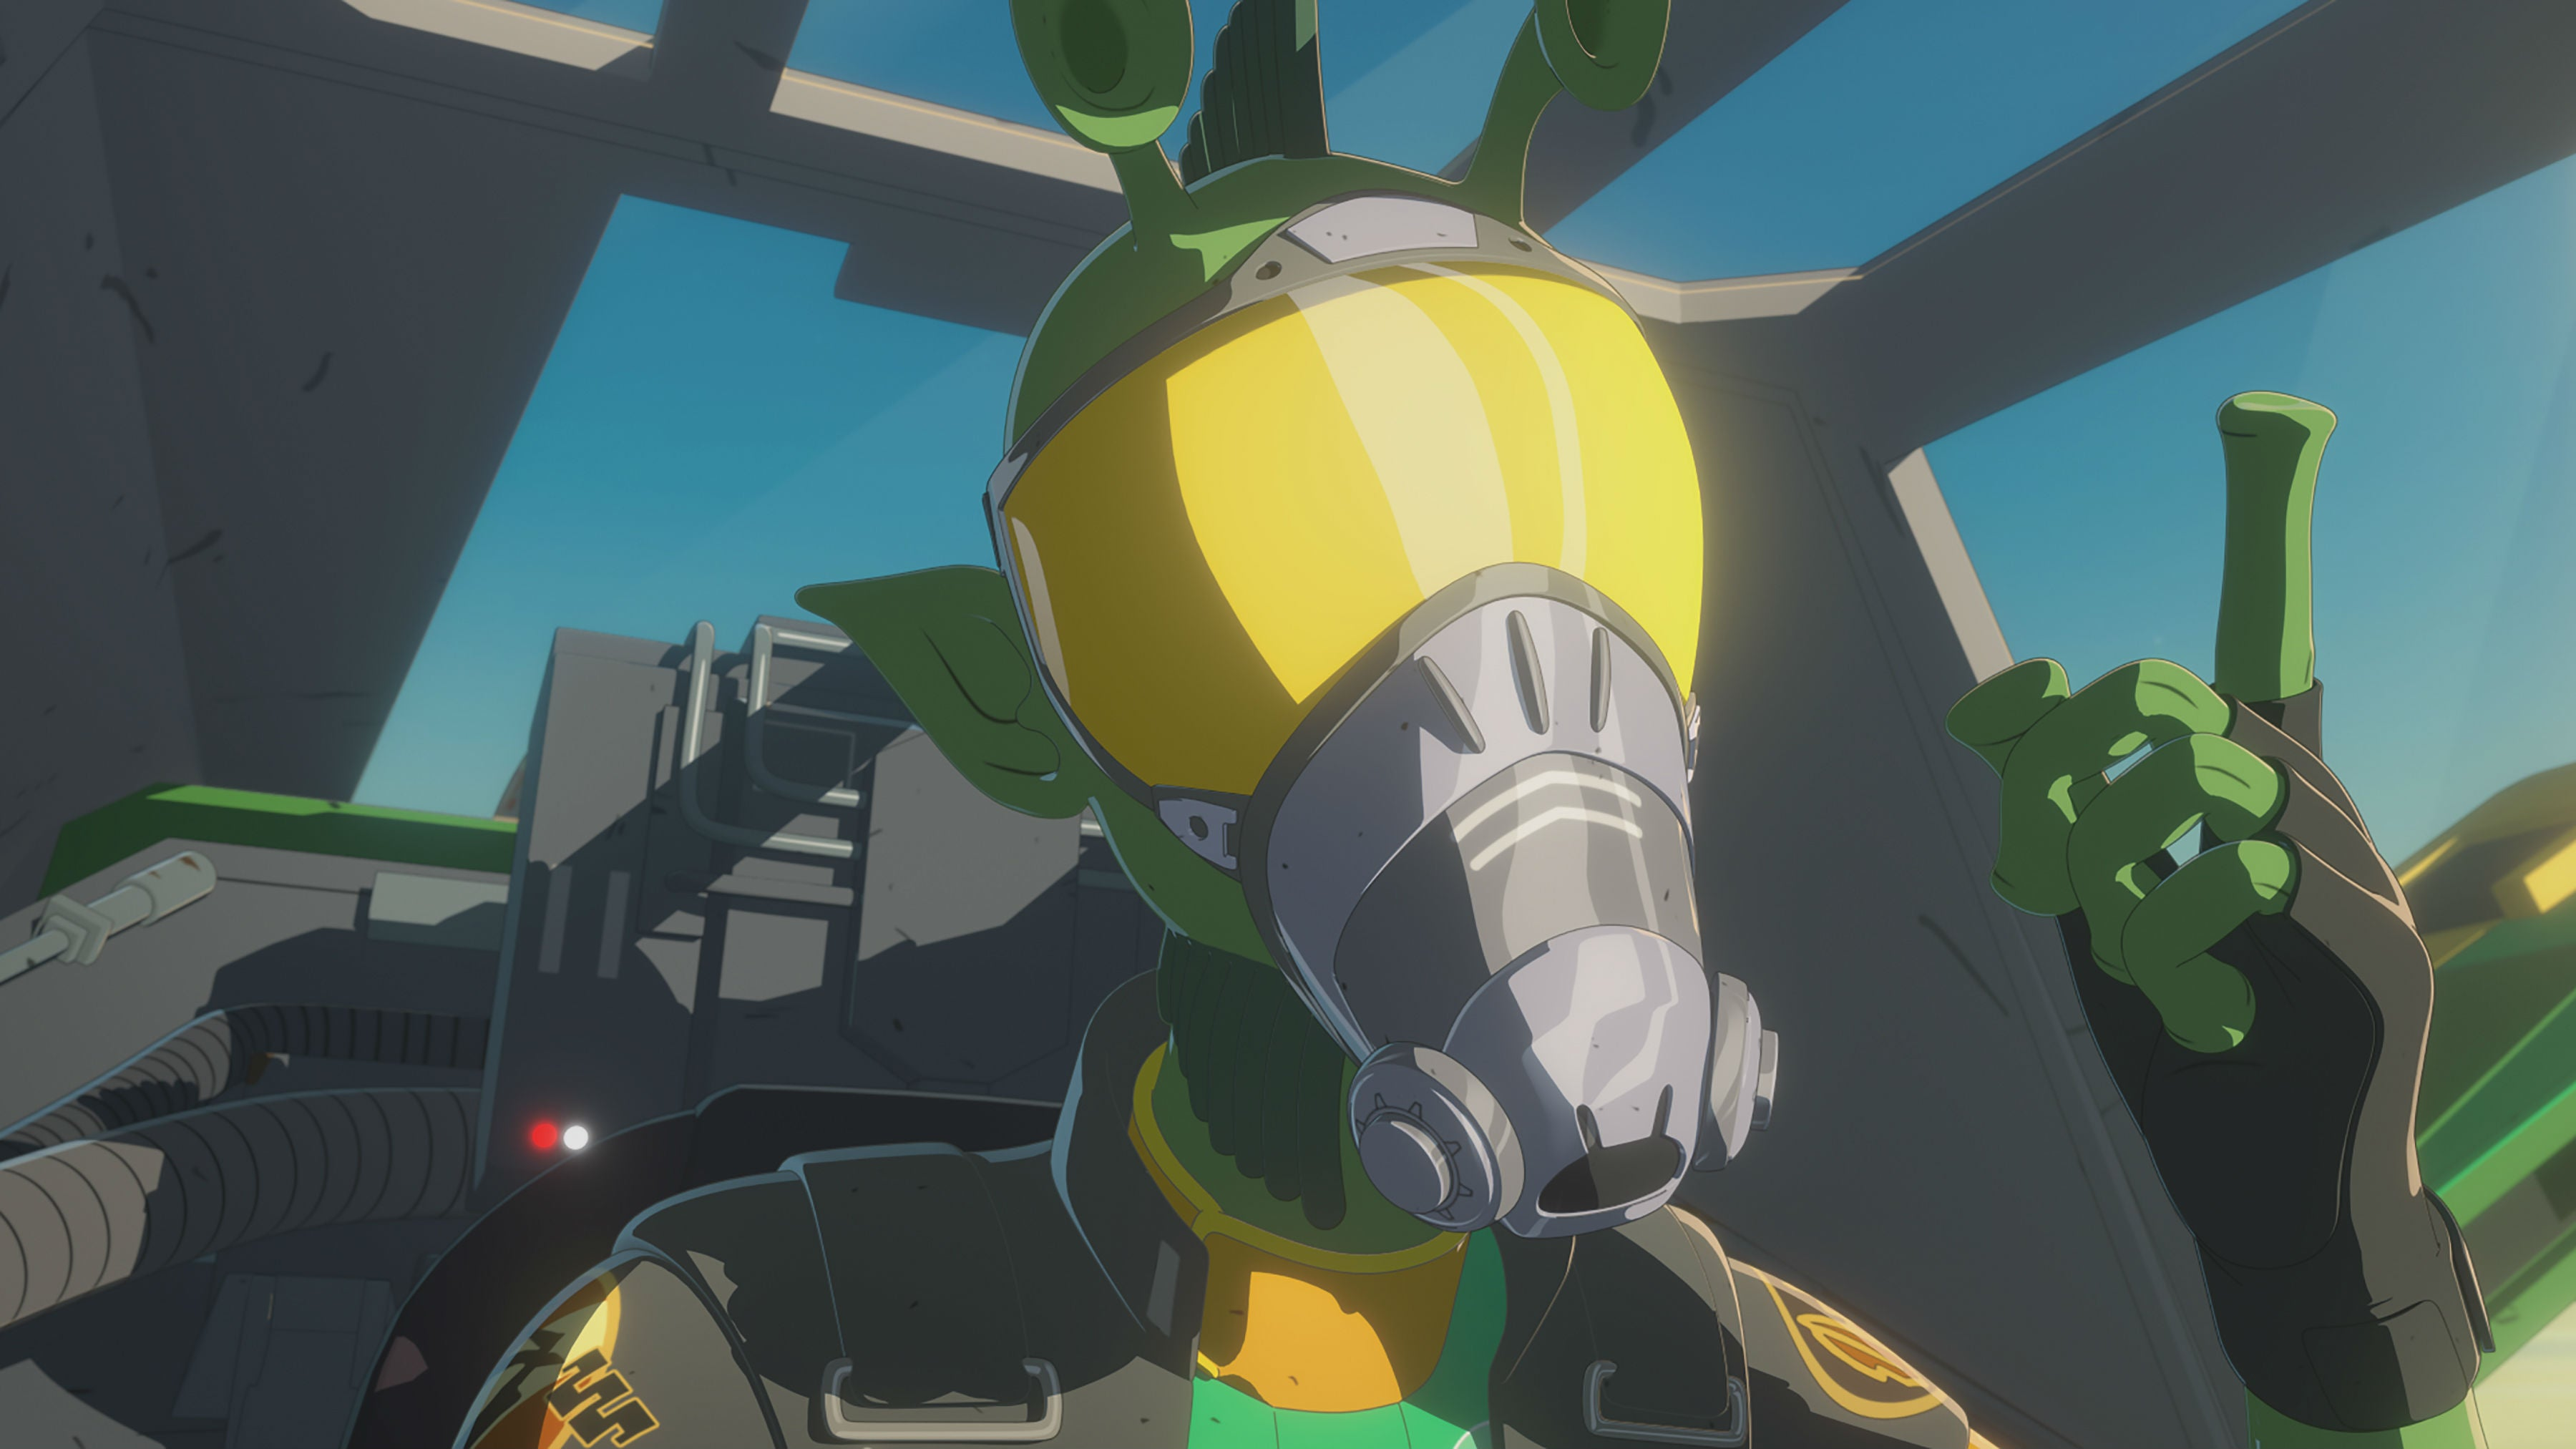 Watch These Star Wars Resistance Shorts While You Wait For The Series To Return